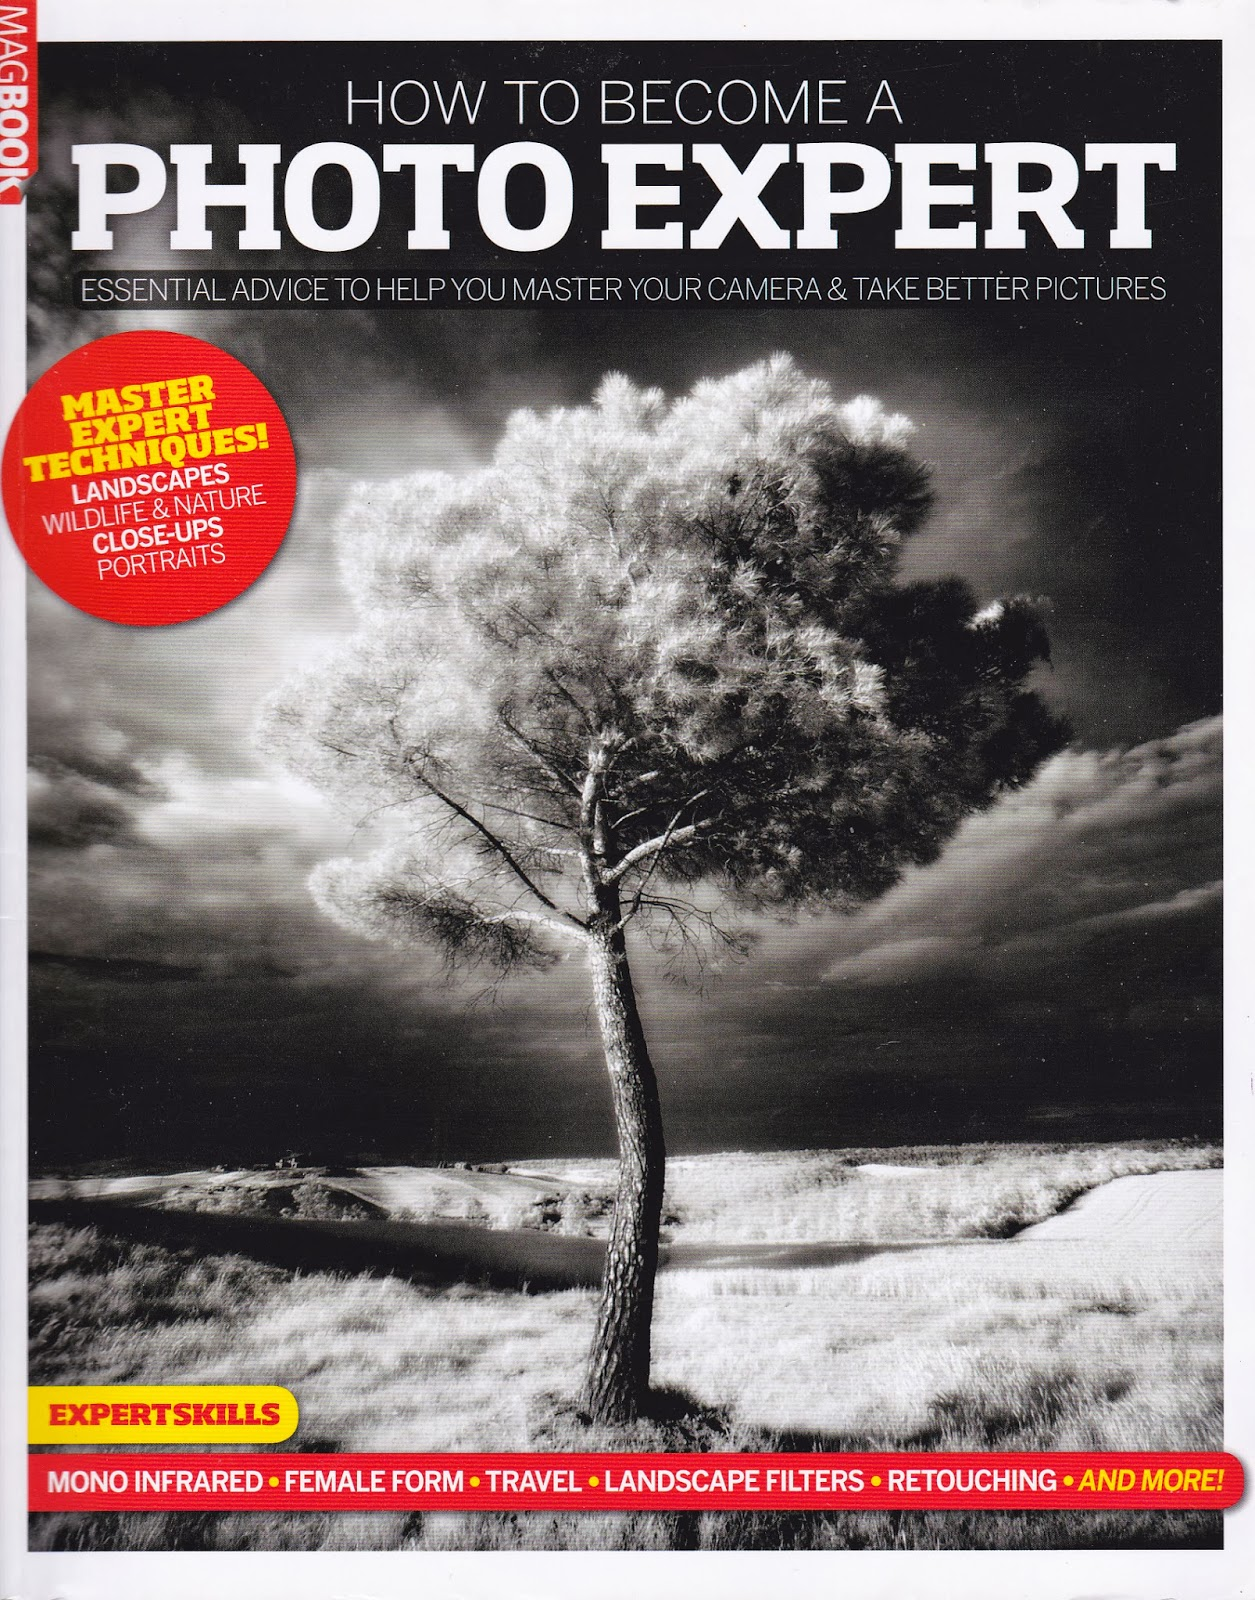 Photography: How To Become A Photo Expert